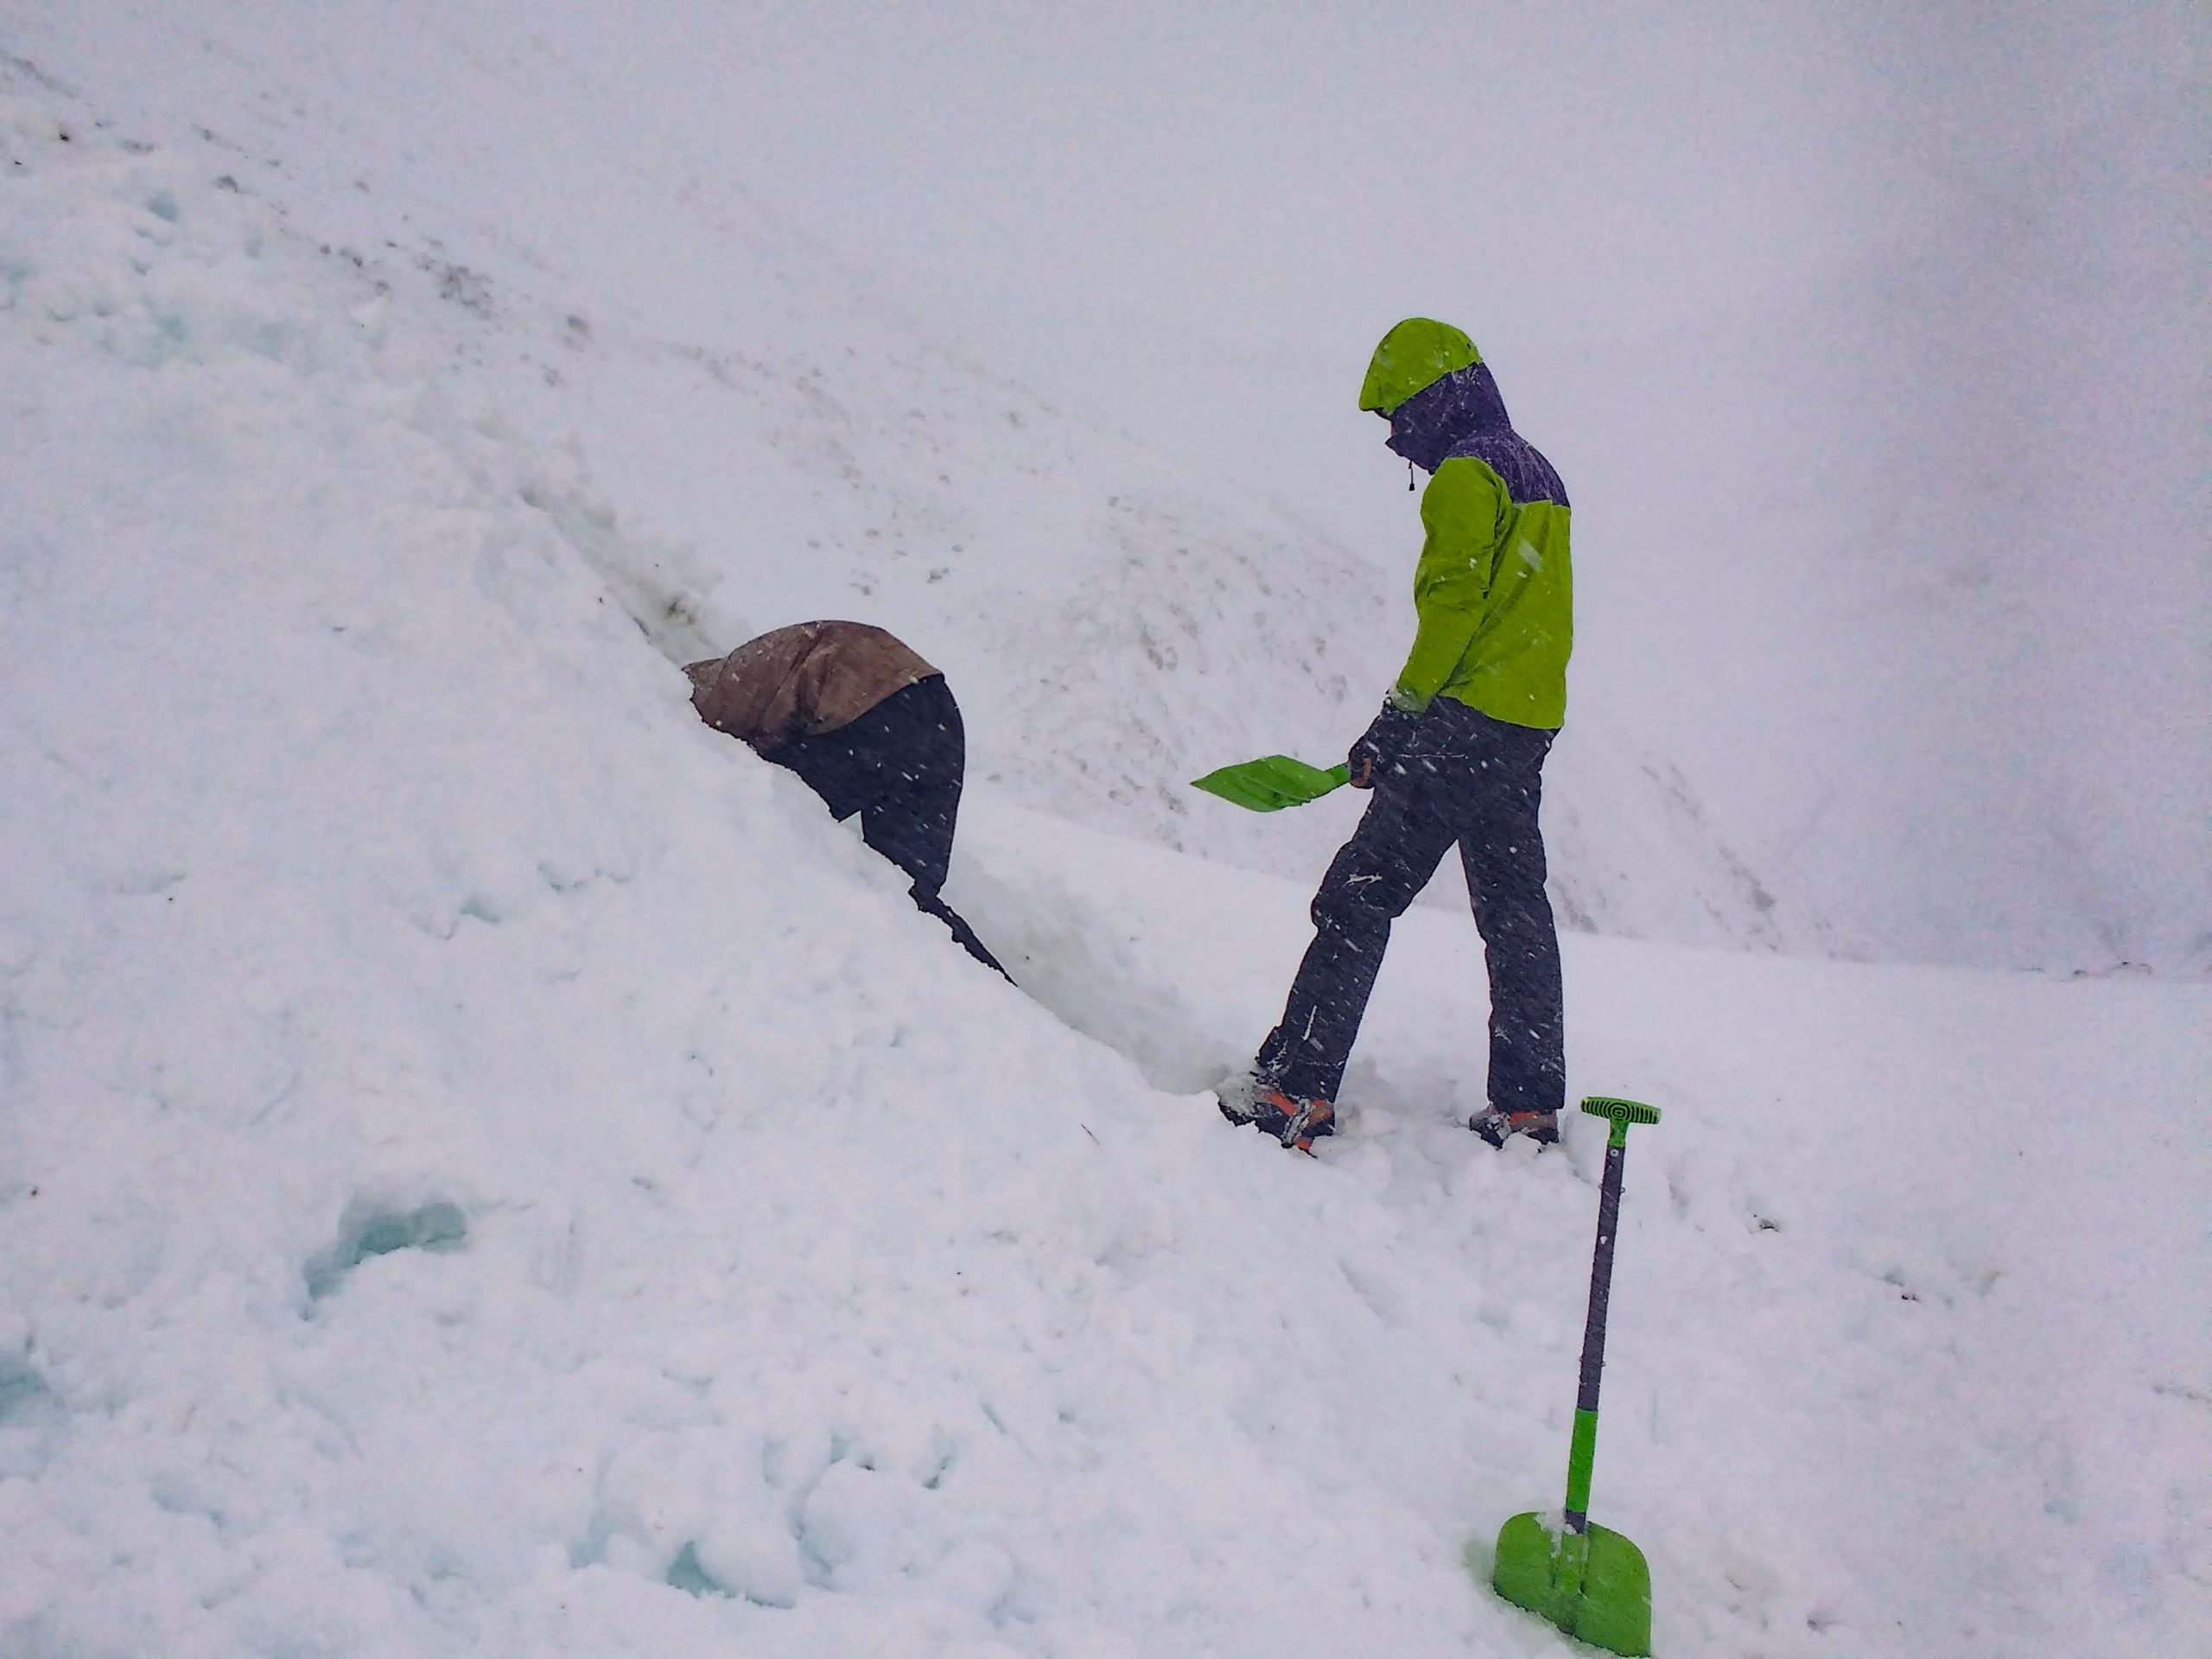 Digging a snow shelter